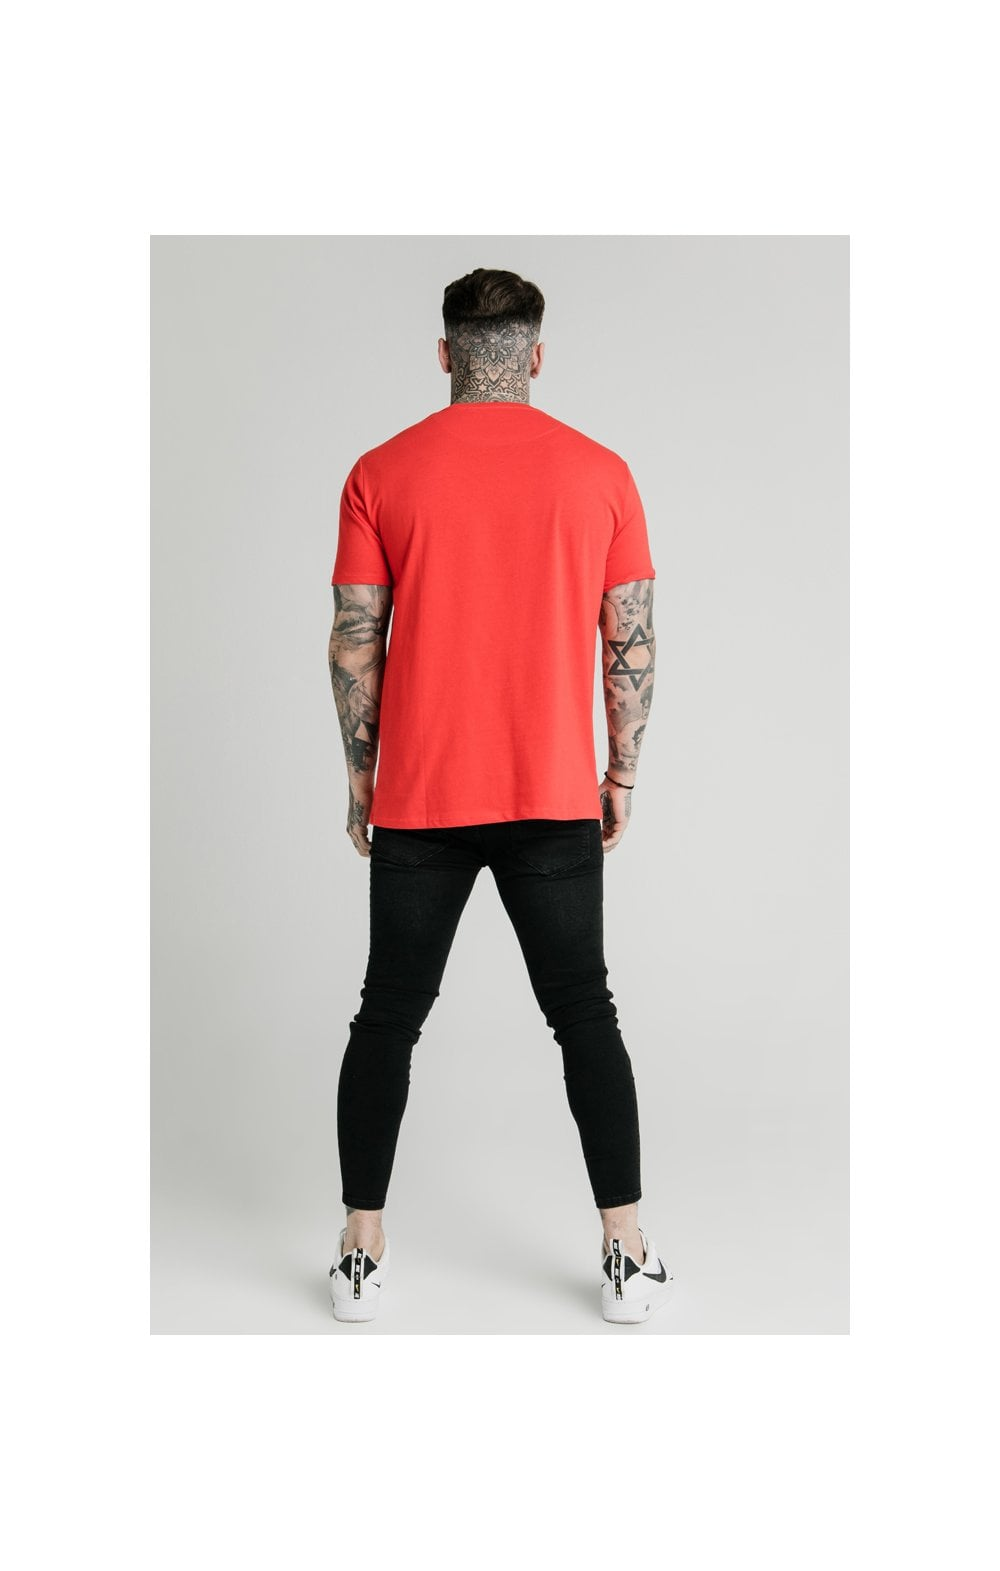 SikSilk x FaZe Apex T-Shirt à Ourlet Carré - Rouge (5)